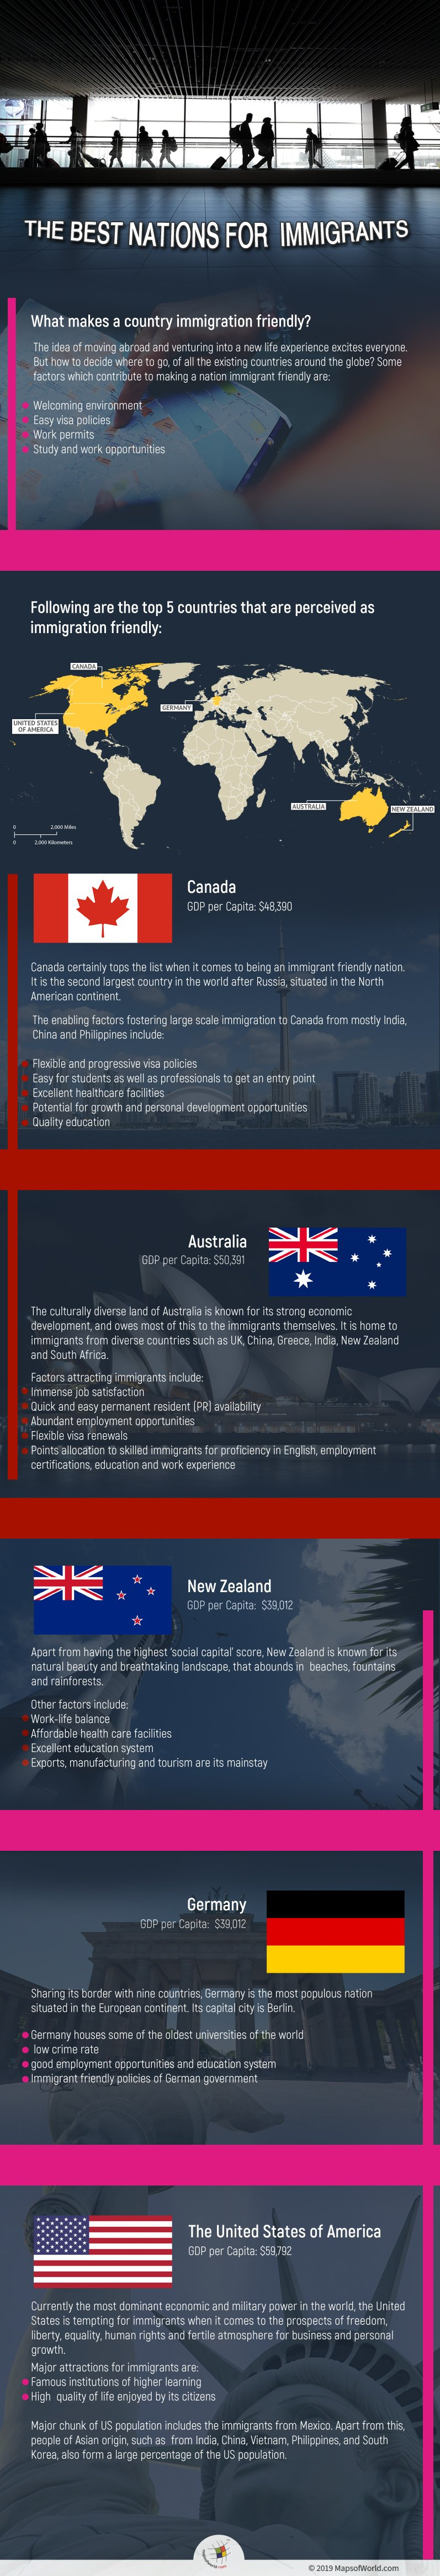 Infographic Giving Details on the Best Nations for Immigrants